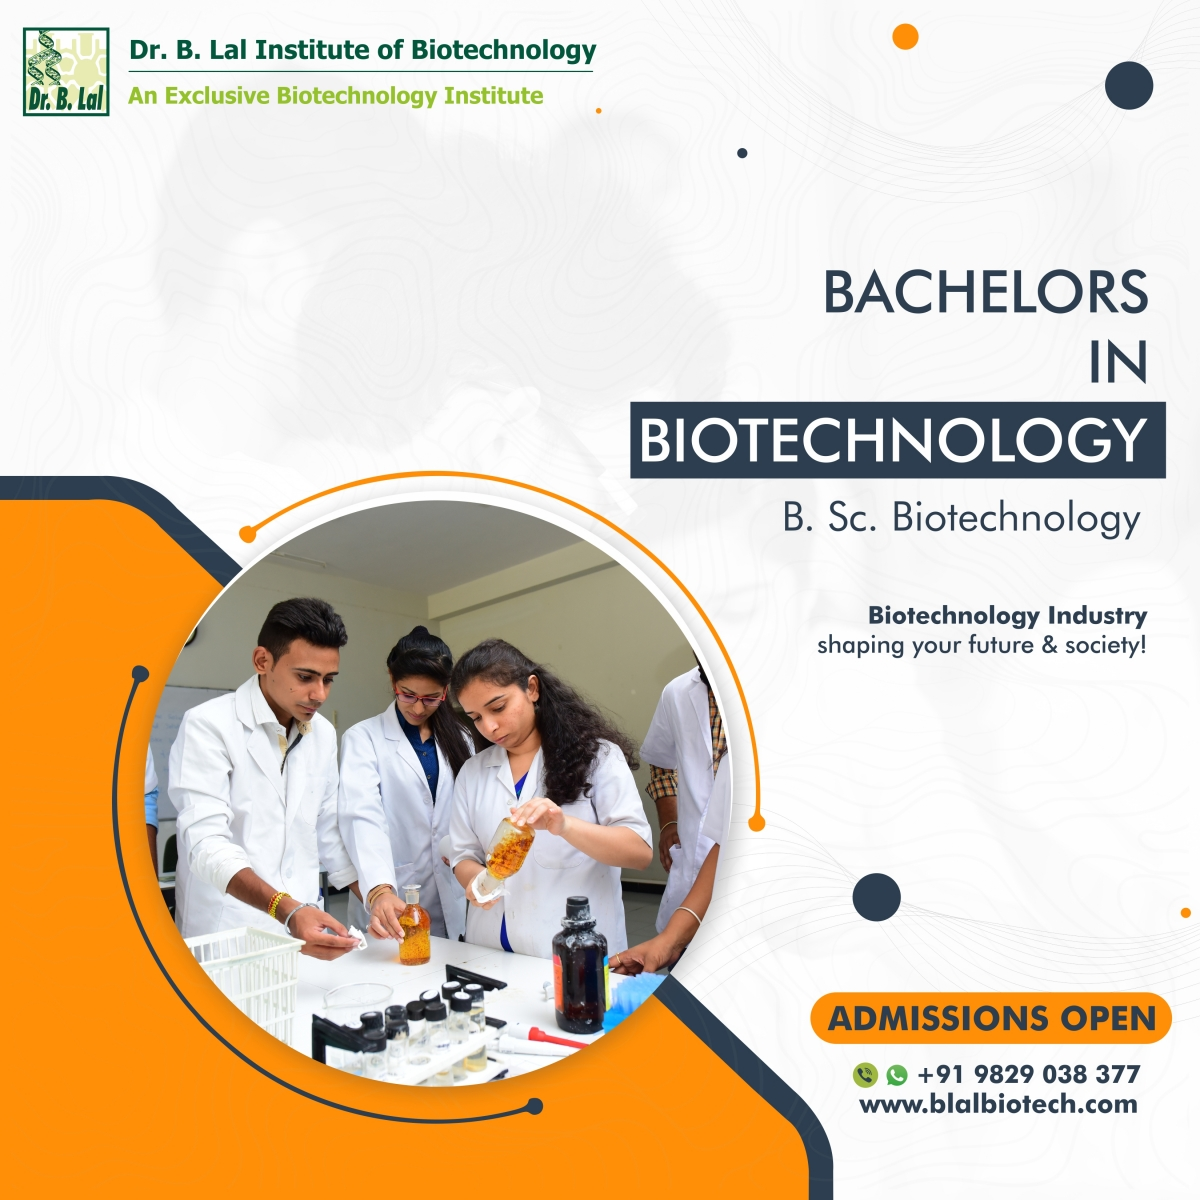 ADMISSIONS OPEN | APPLY NOW